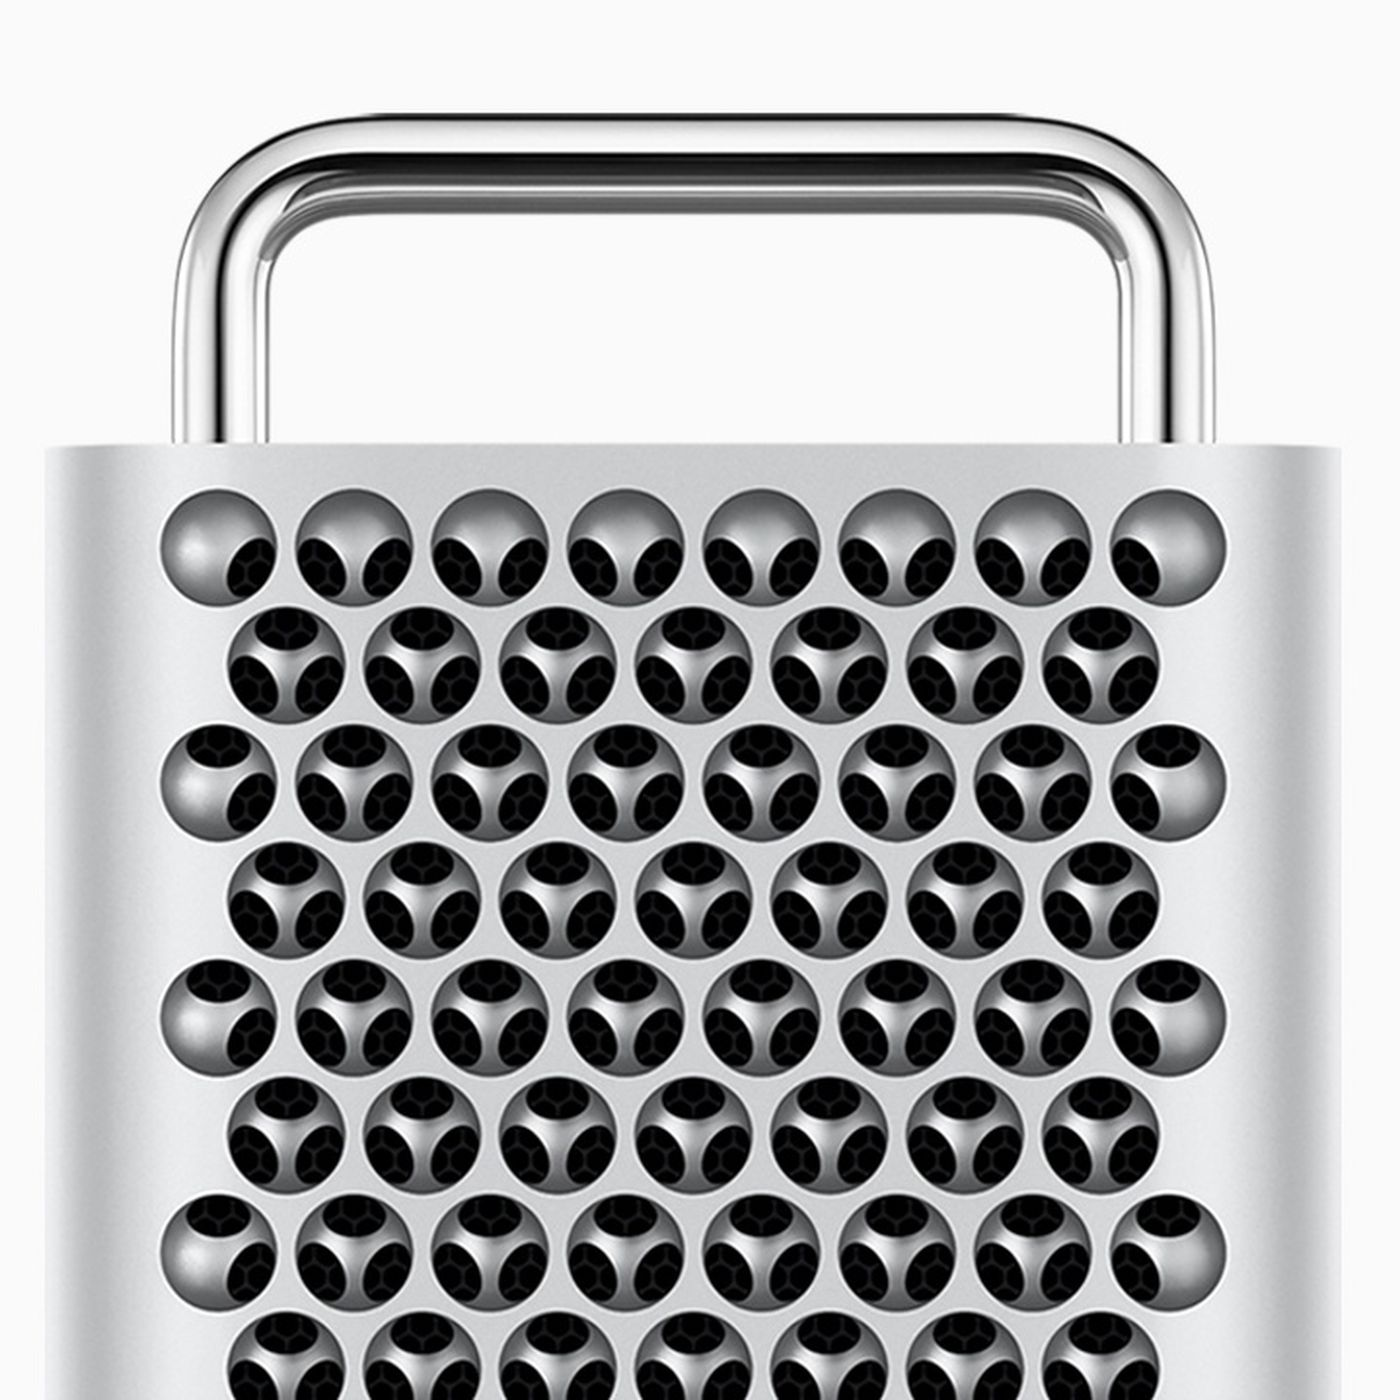 Apple is back to cheese graters because it's hard to upgrade